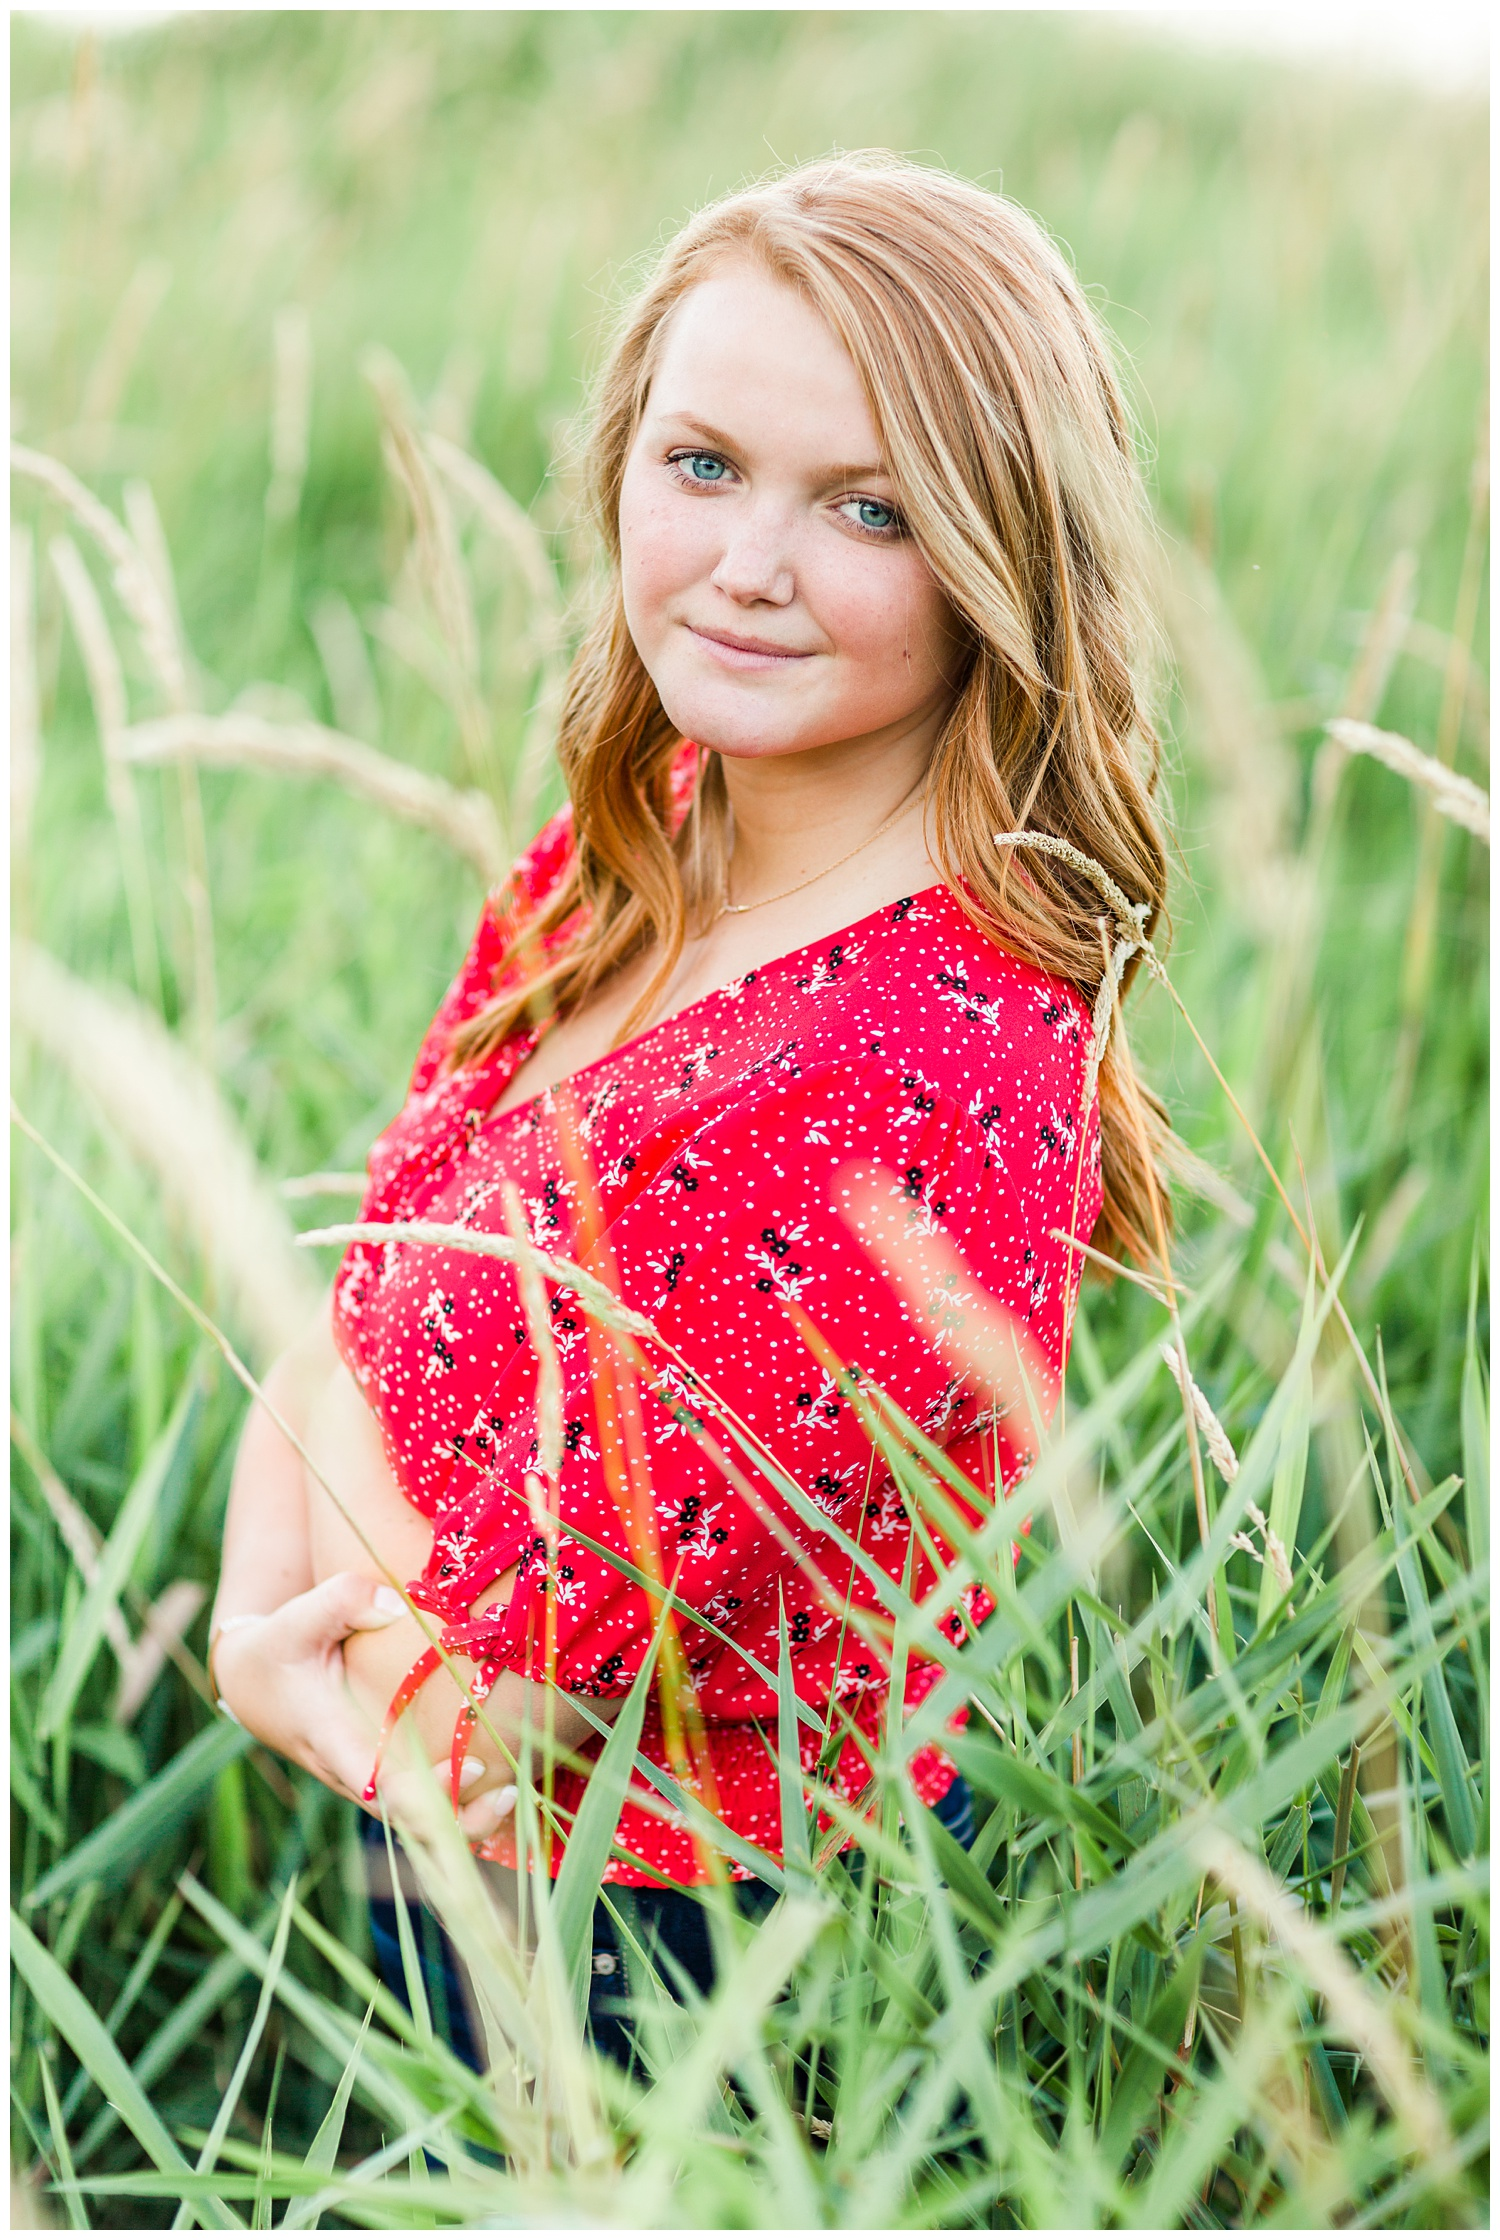 Senior girl wearing a red floral blouse standing in a grassy field at Smith Lake, Algona, Iowa | CB Studio